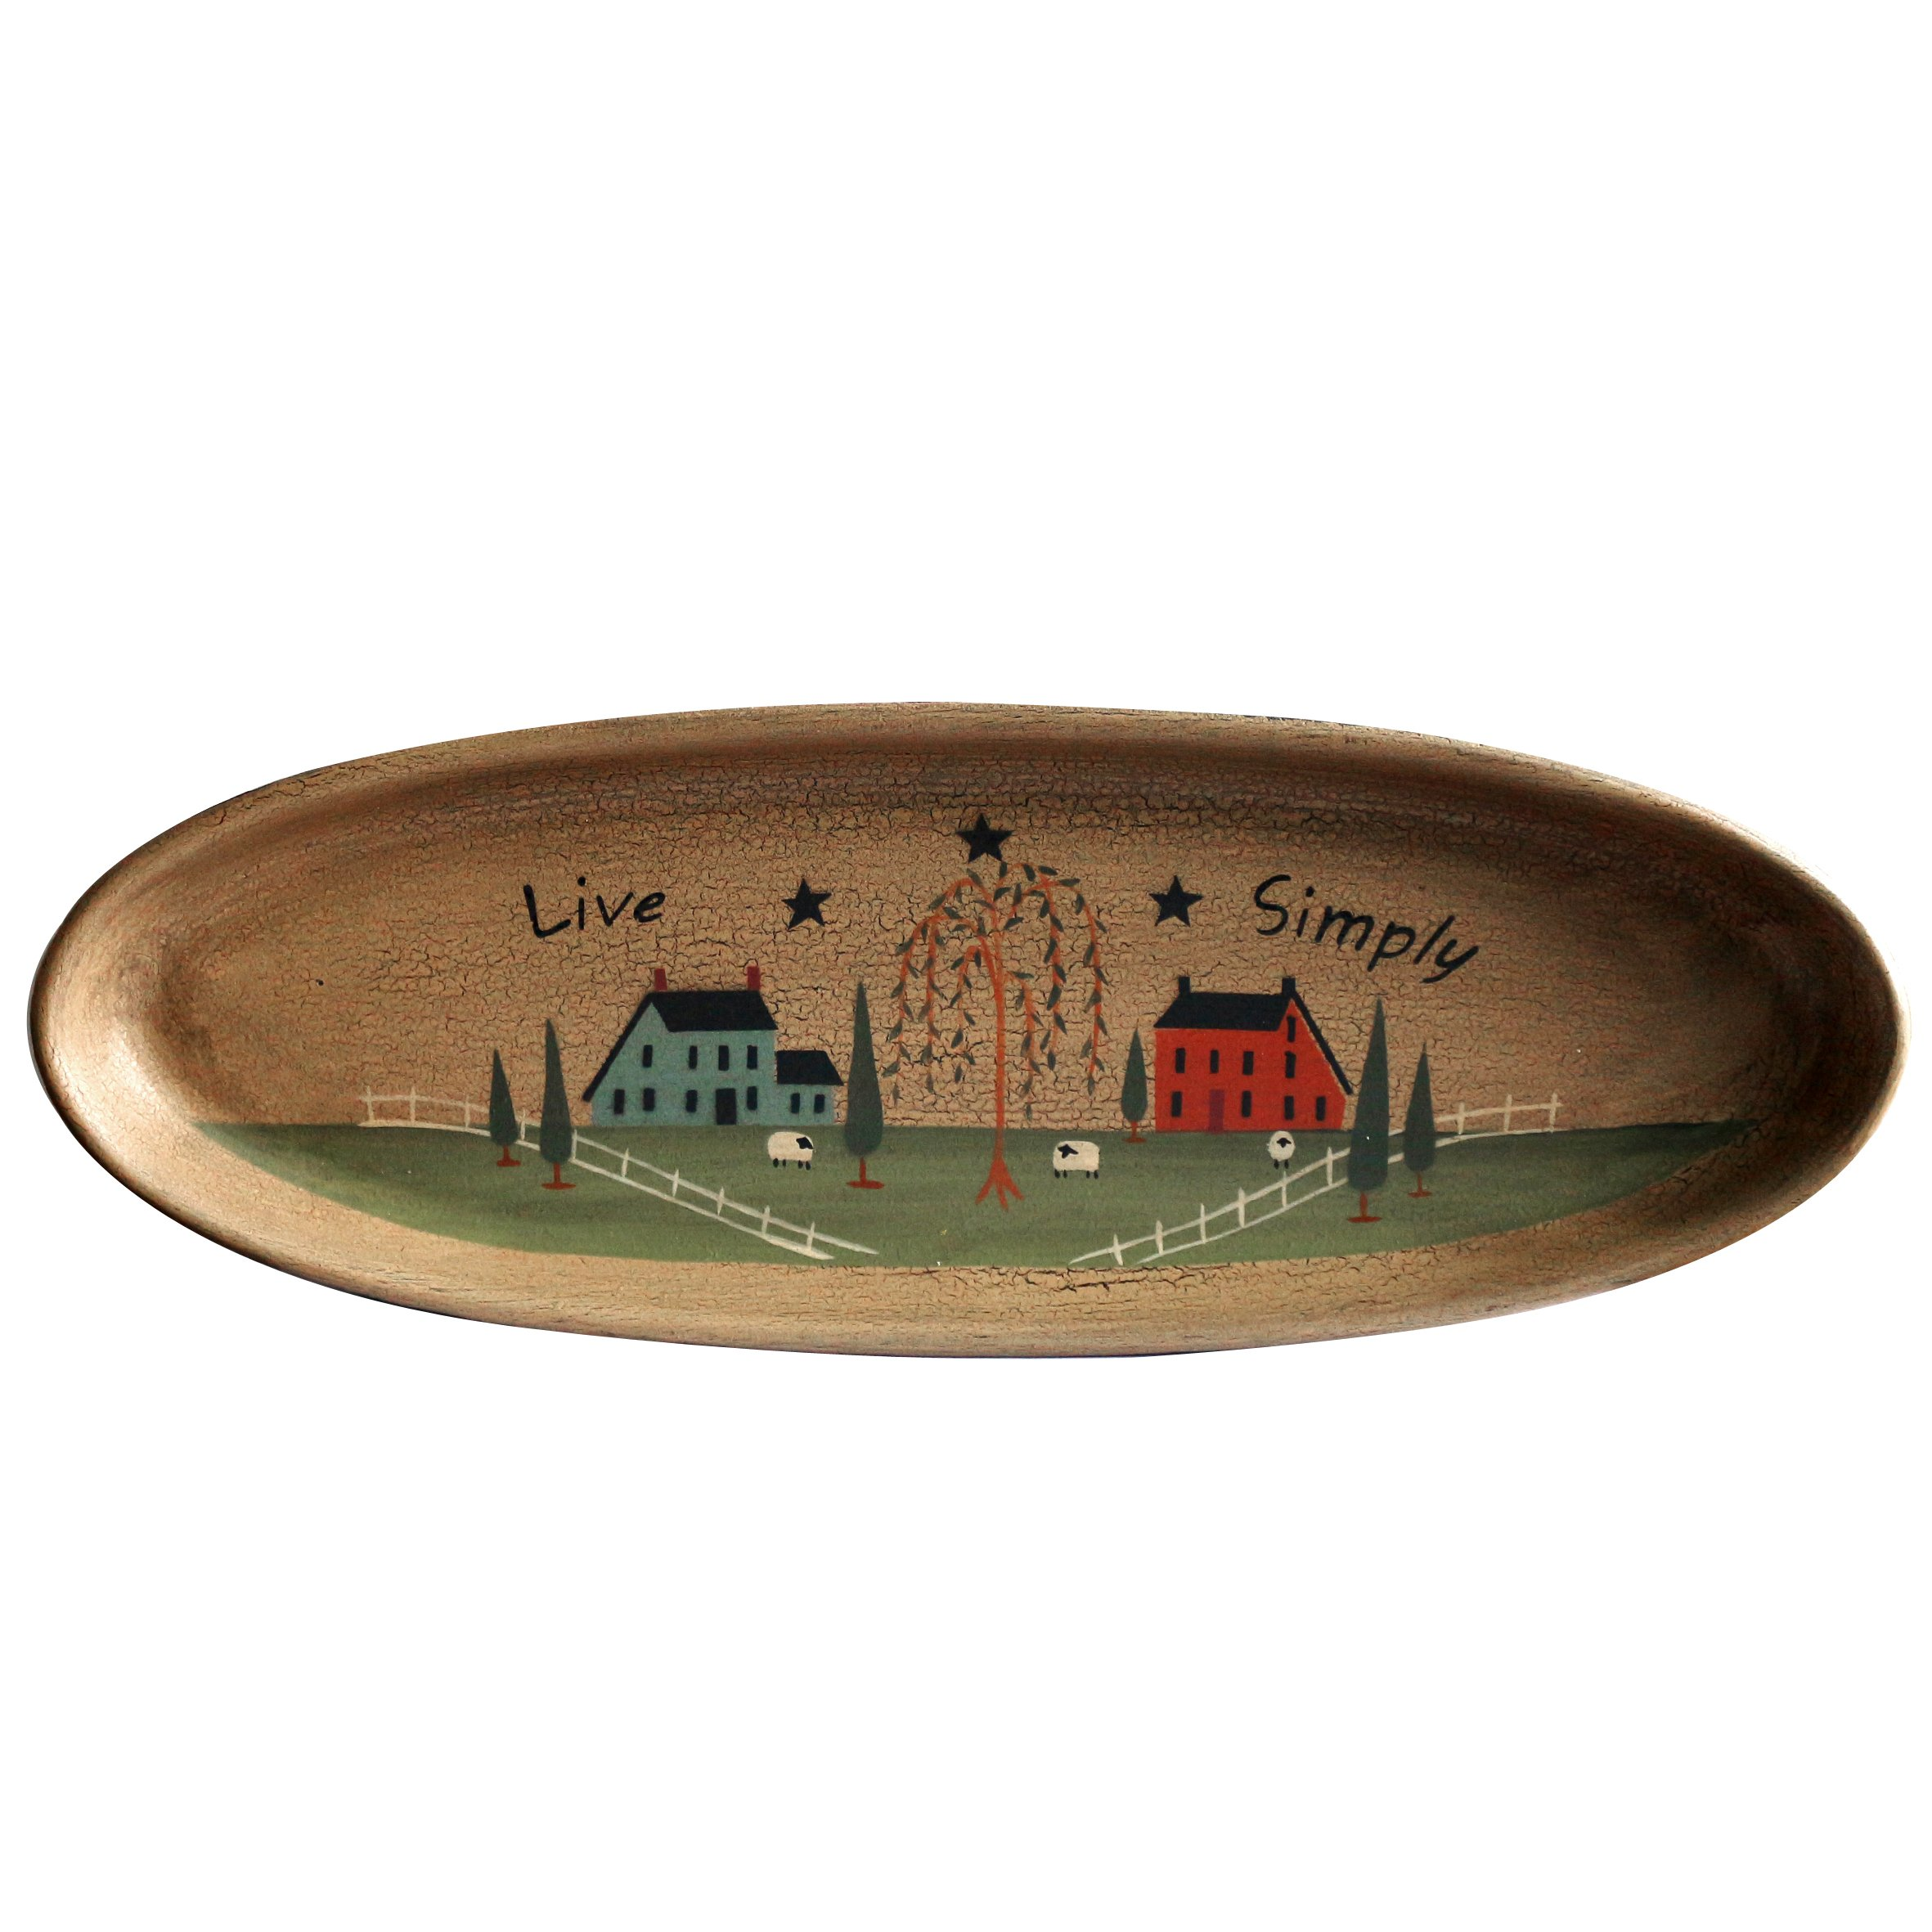 CVHOMEDECO. Primitive Rustic House Willow Tree Sheep Wood Decorative Plate Oval Crackled Display Wooden Plate Home Décor Art, 15-1/2'' X 5-1/2''